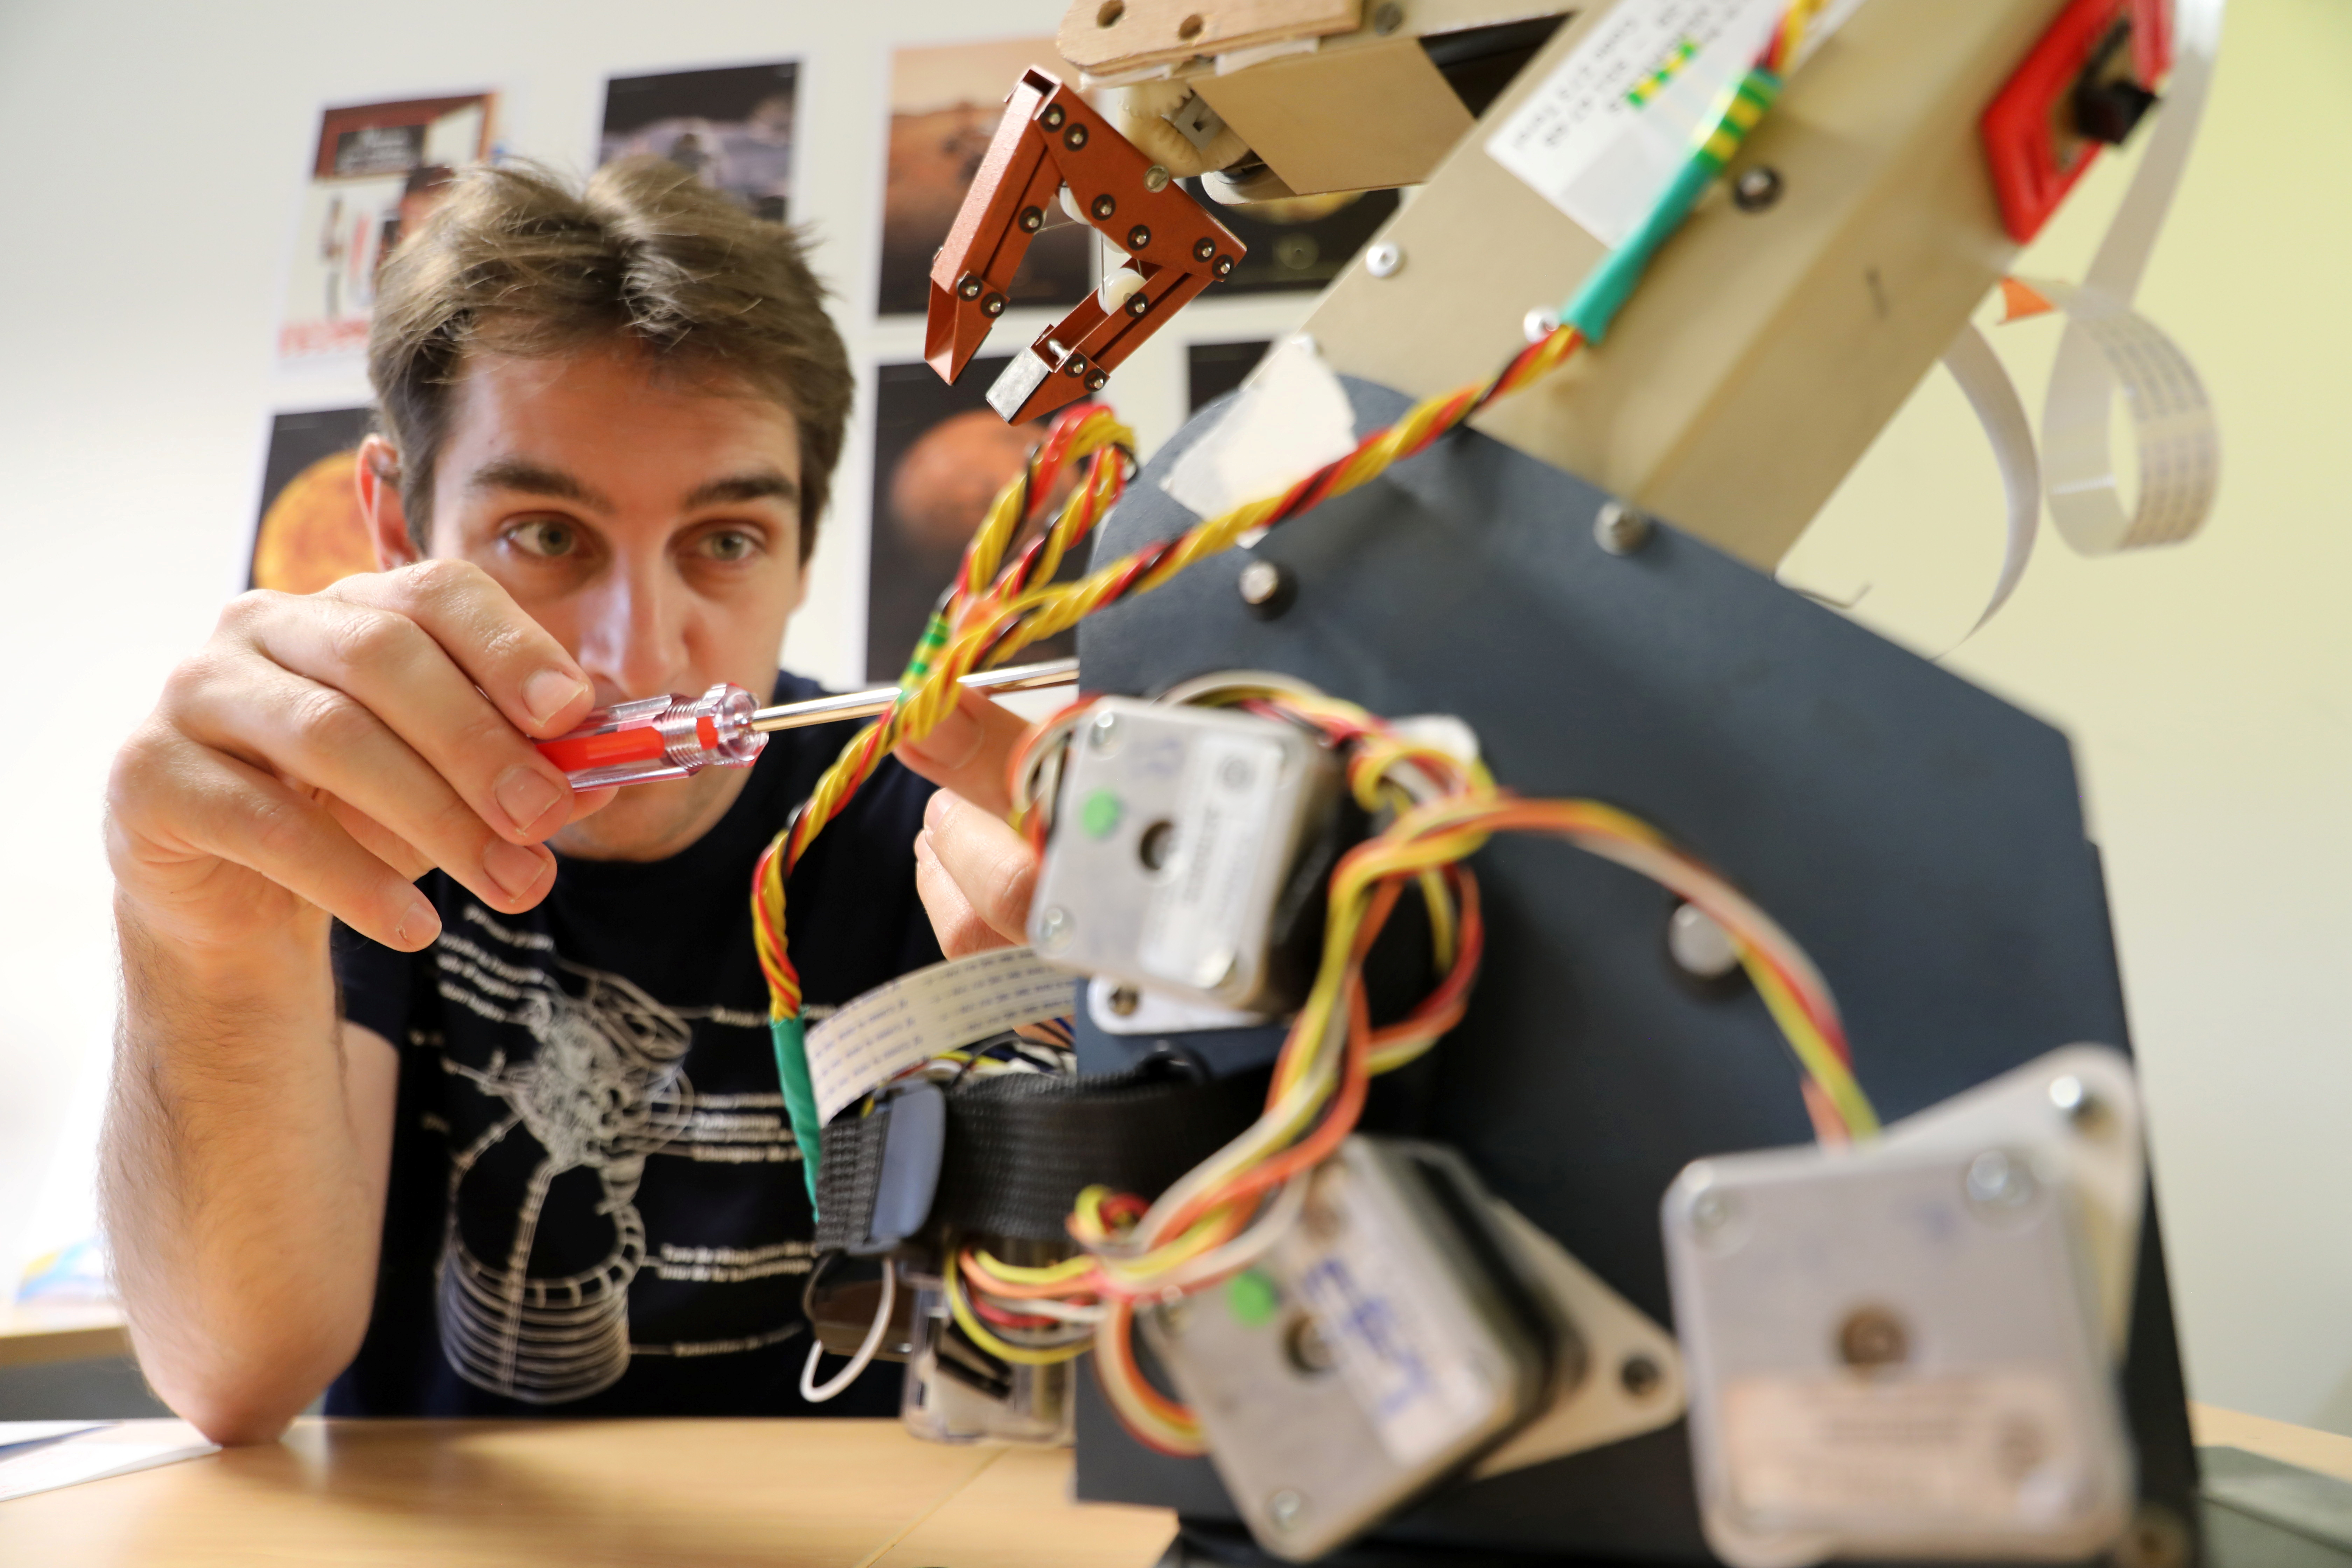 Matthieu Pluvinage, a candidate to the European Space Agency (ESA) astronaut selection, poses in his office at the ESIGELEC engineering school where he teaches, in Saint-Etienne-du-Rouvray, France, June 4, 2021. Picture taken June 4, 2021. REUTERS/Lea Guedj